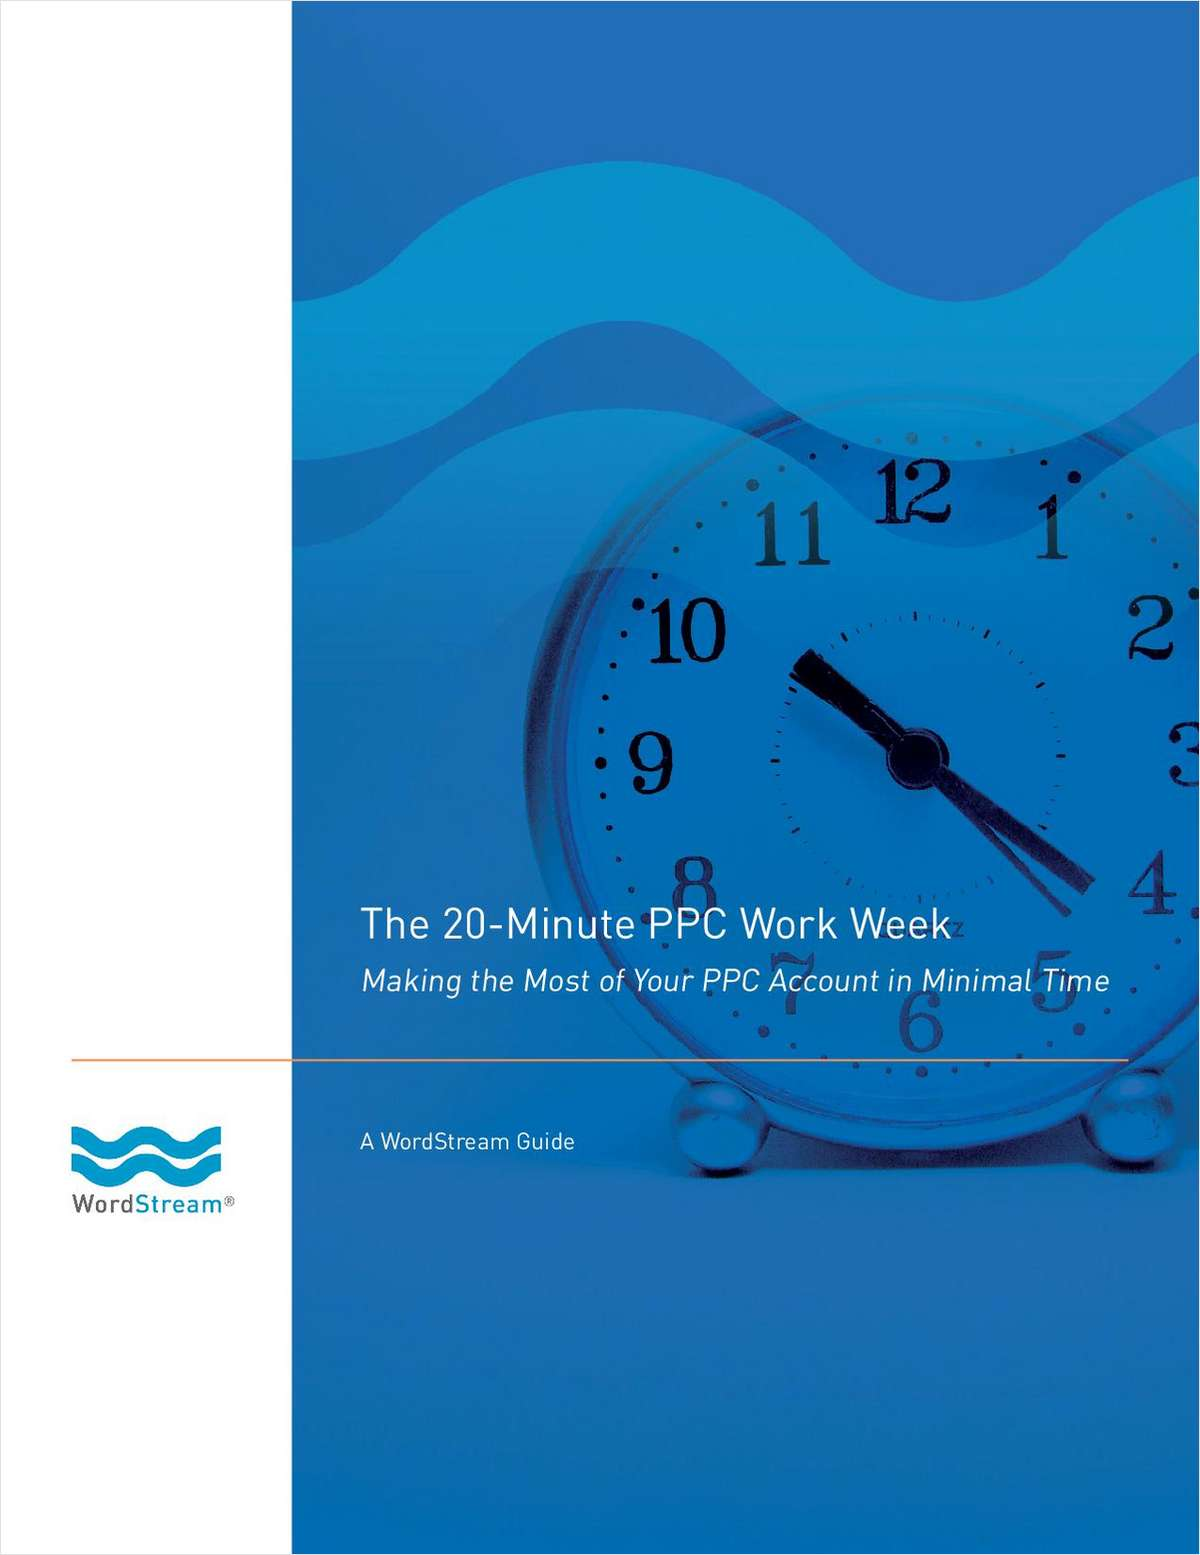 The 20-Minute PPC Work Week: Making the Most of Your PPC Account in Minimal Time